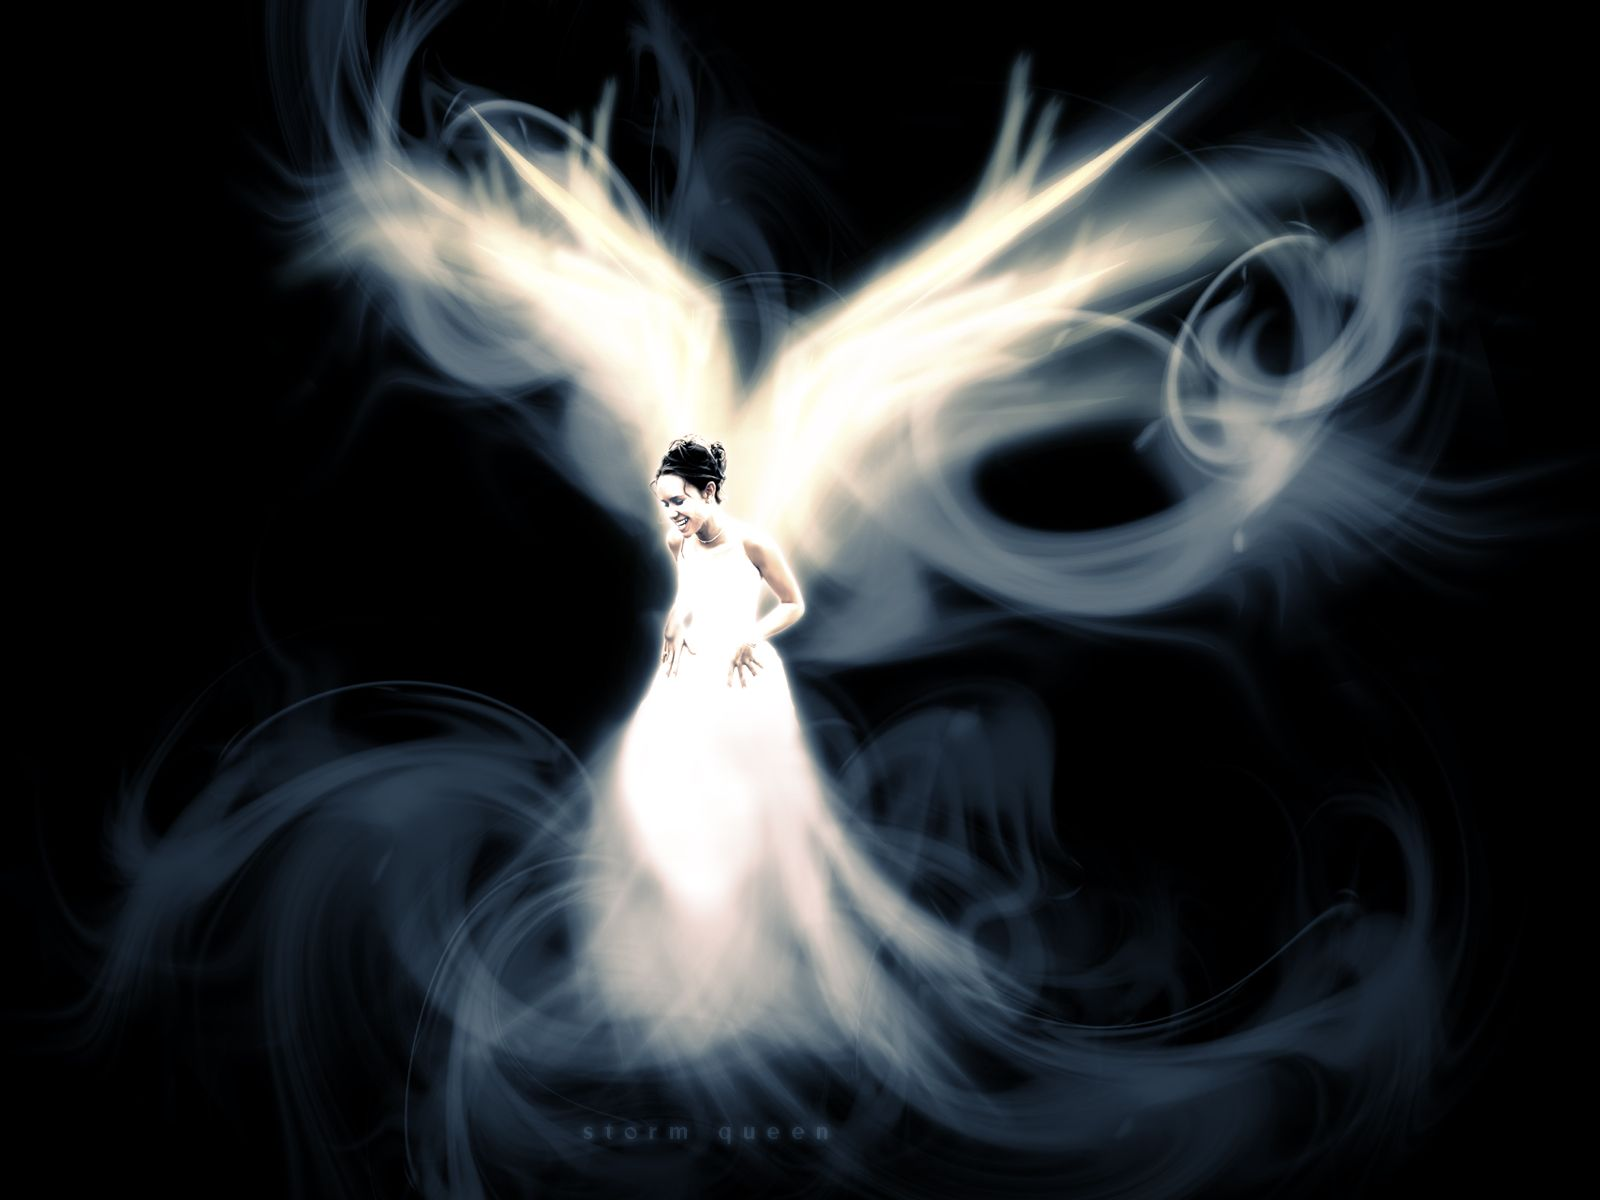 Pin By Connie Torres On Angels Angel Wallpaper Angel Painting Angel Pictures Angel hd wallpaper download